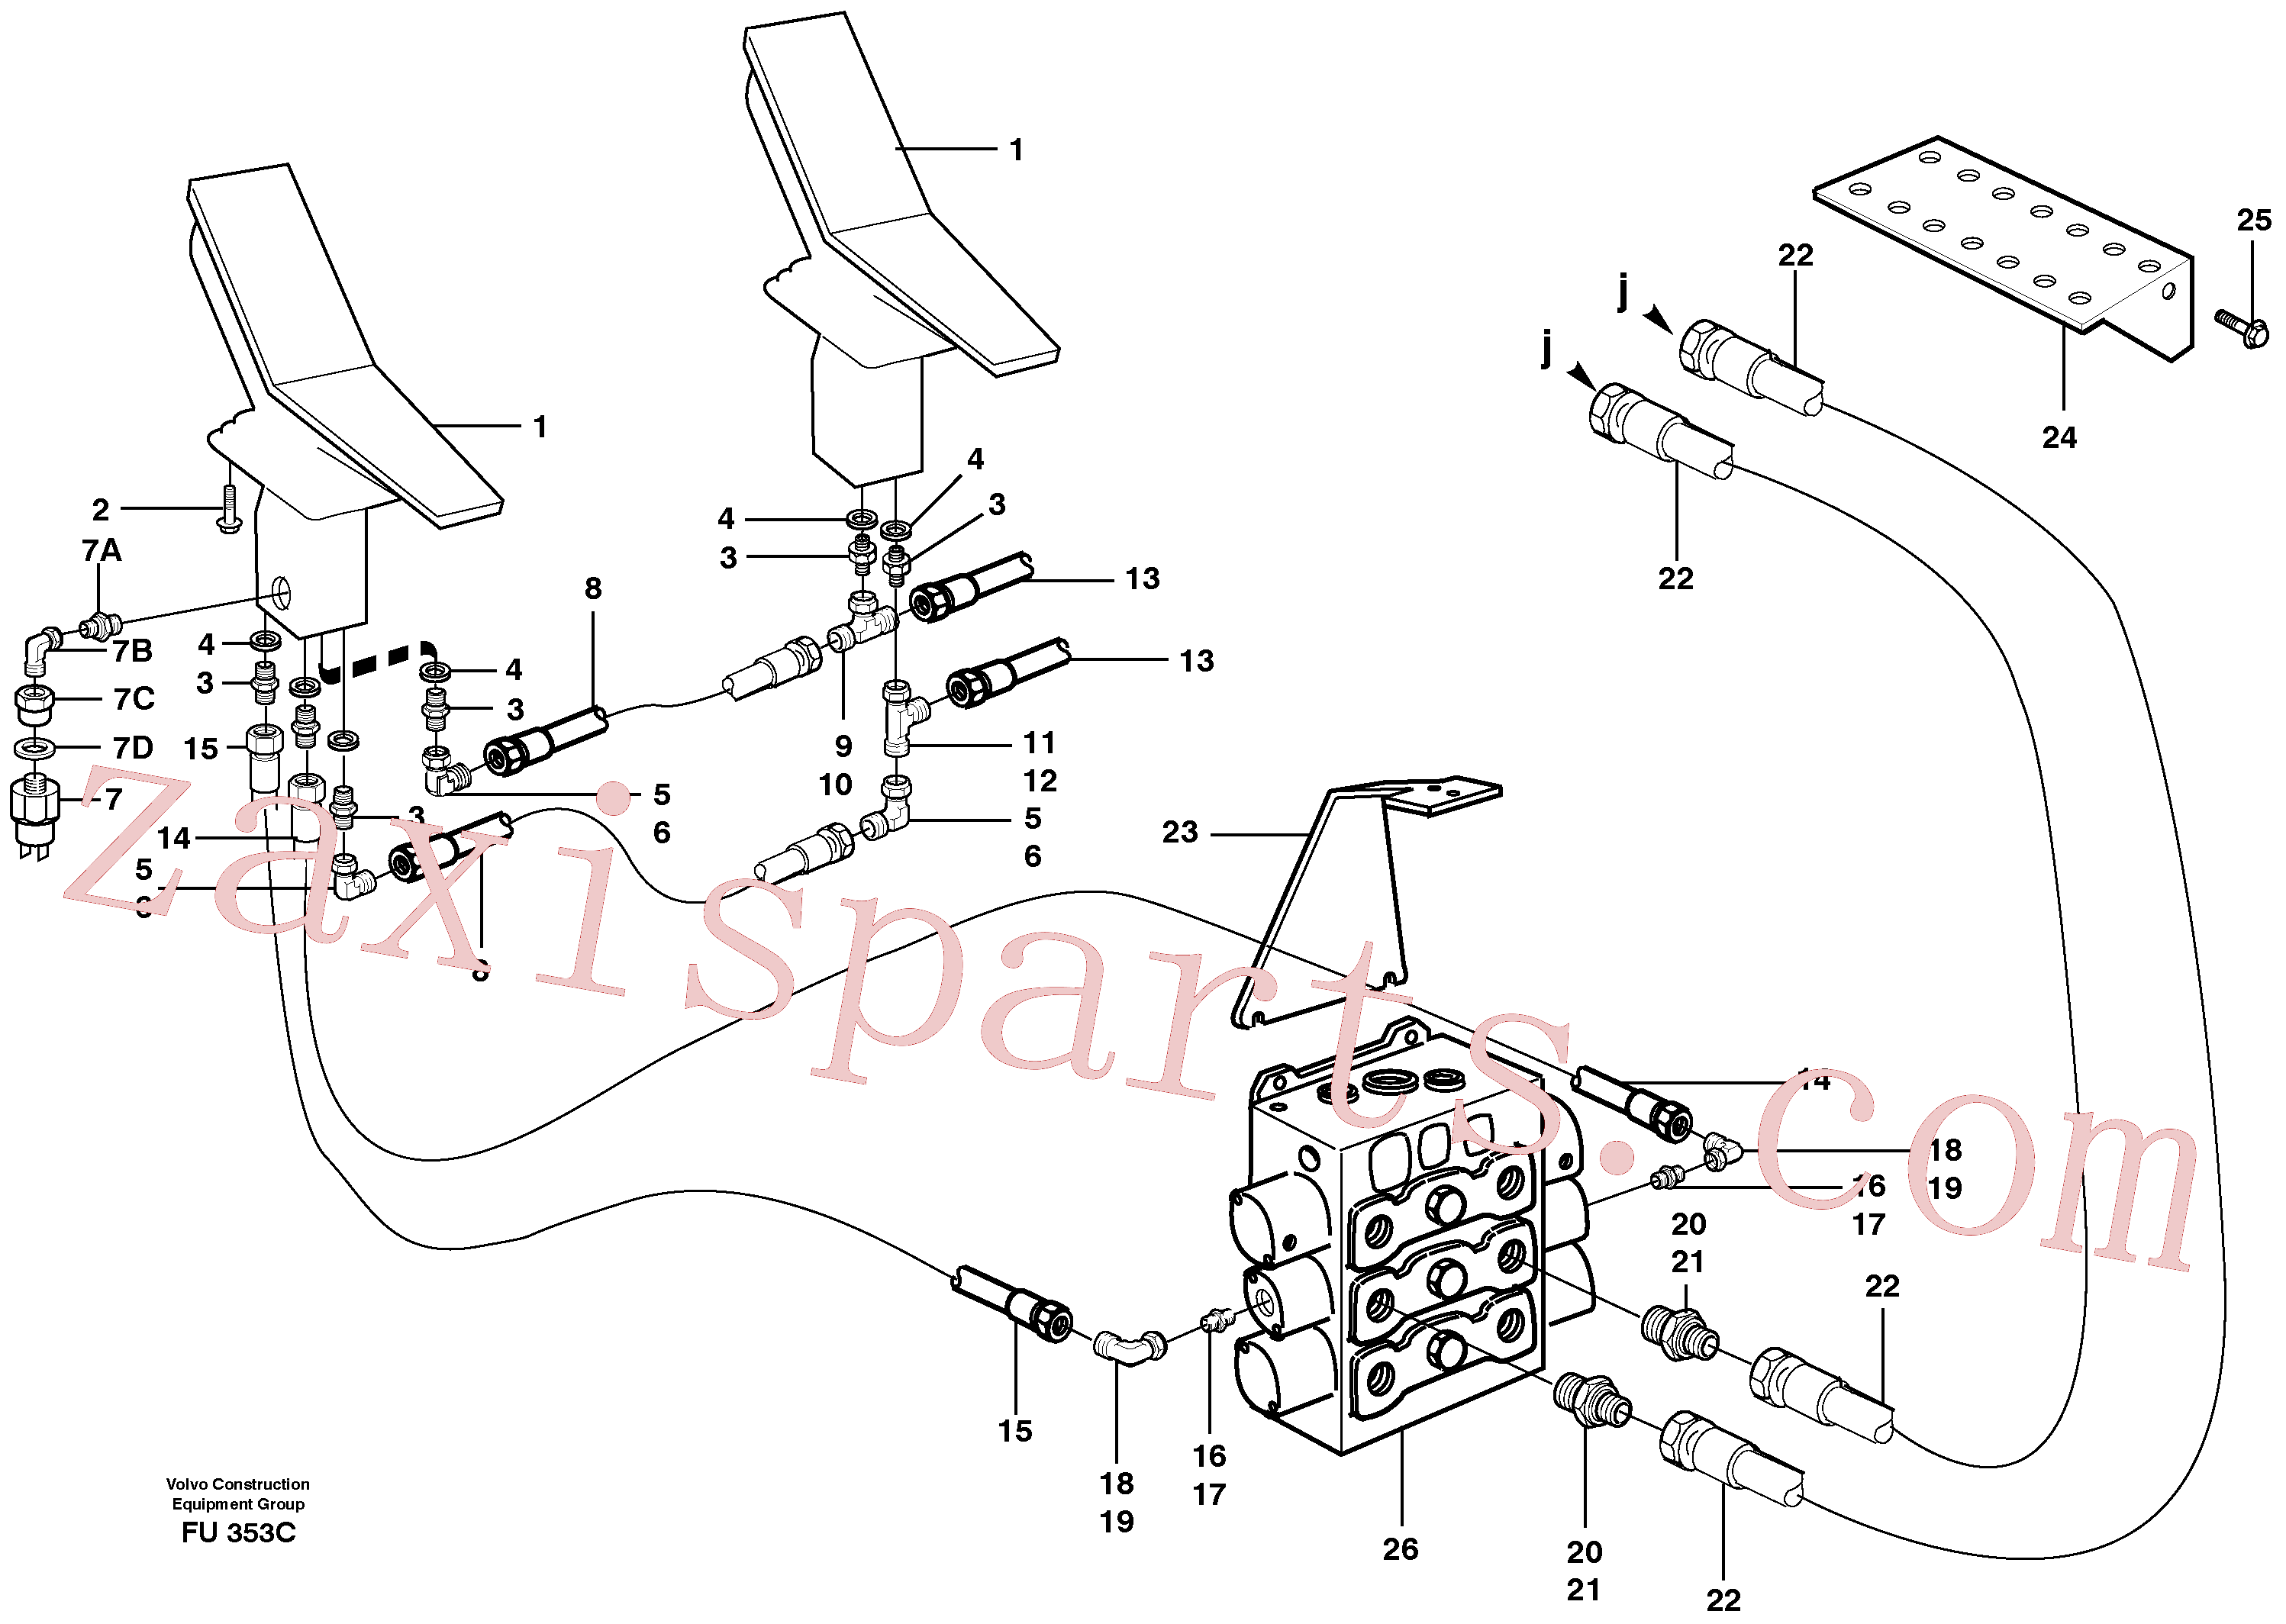 VOE14346179 for Volvo Slope bucket/rotating grab hydraulics in base machine(FU353C assembly)